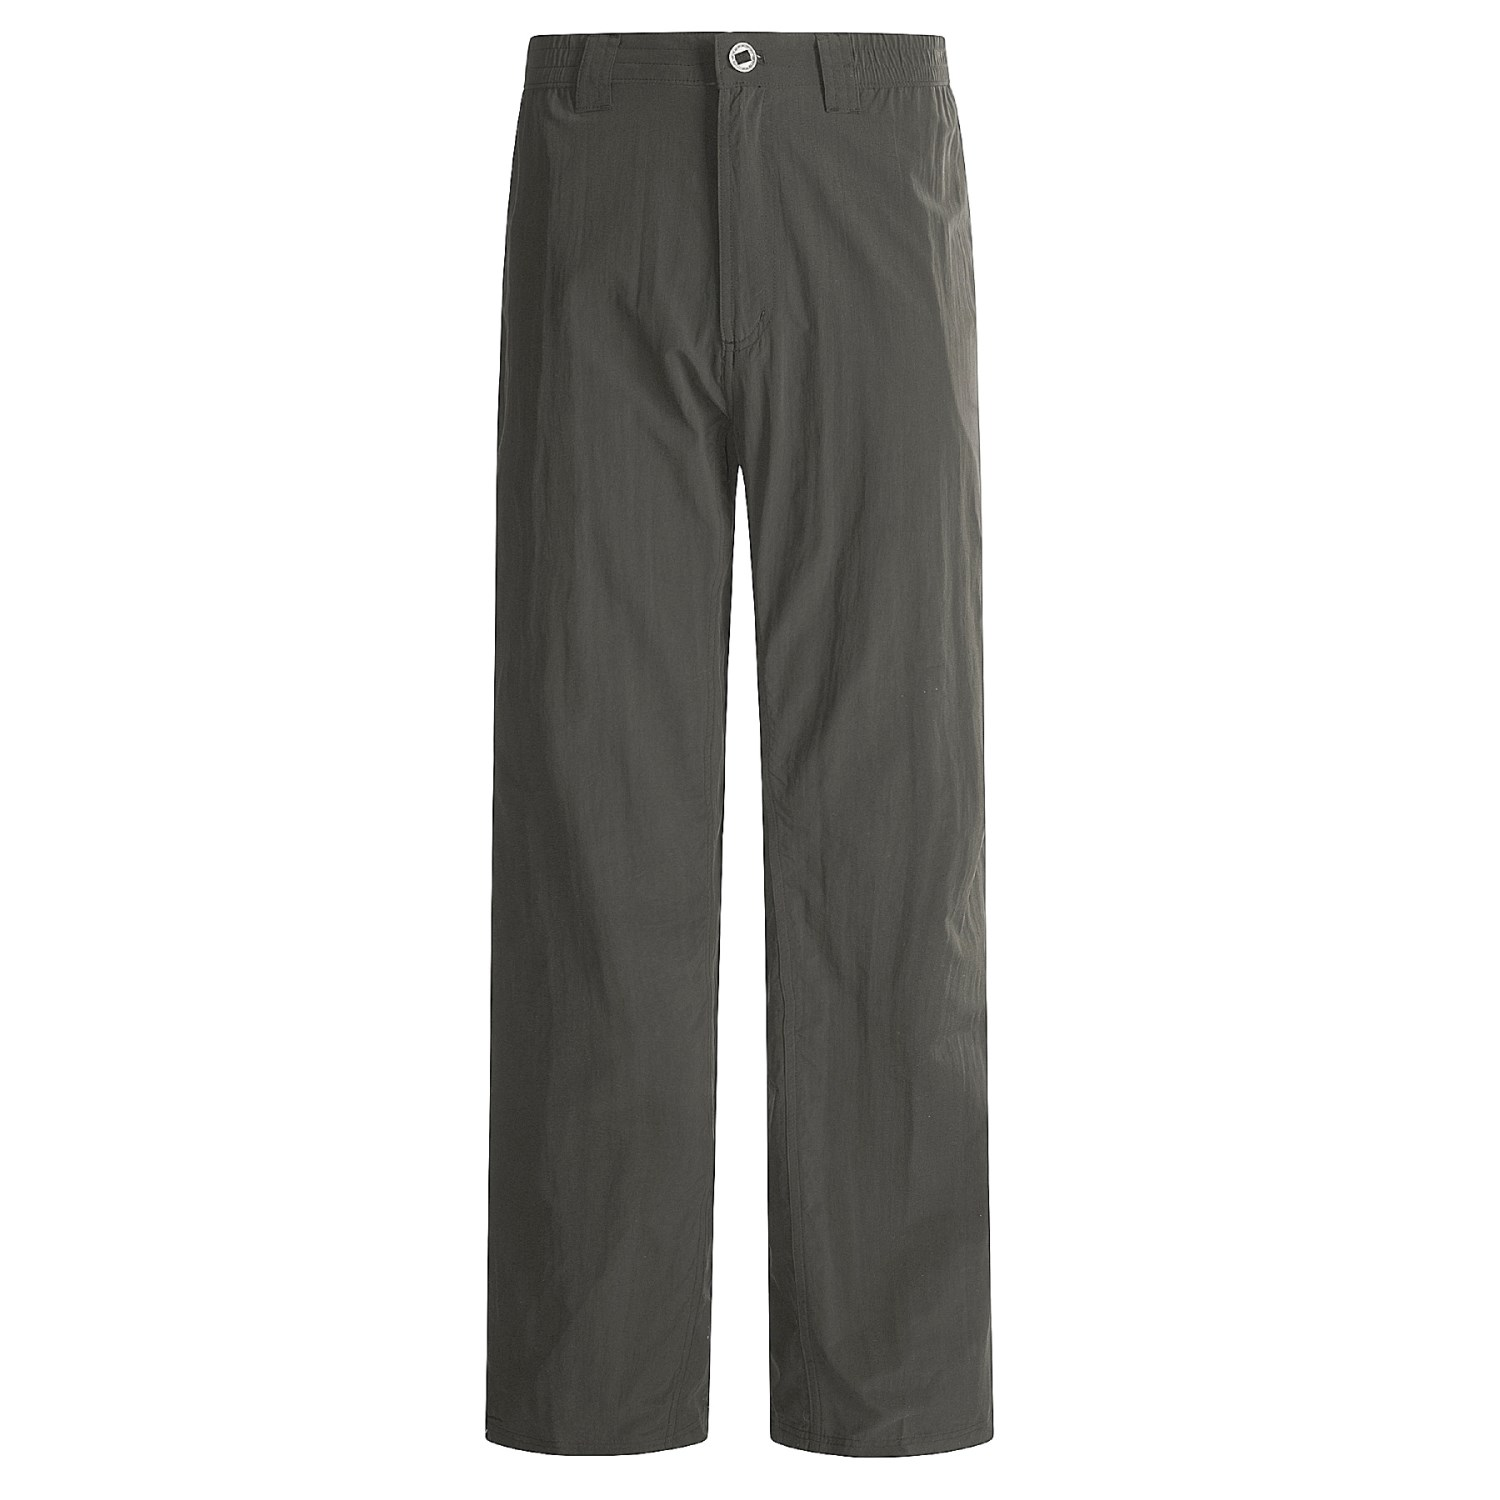 Shop men's nylon pants on sale at Eddie Bauer, a legend in American sportswear. Explore our latest selection of nylon pants for men. % satisfaction guaranteed since